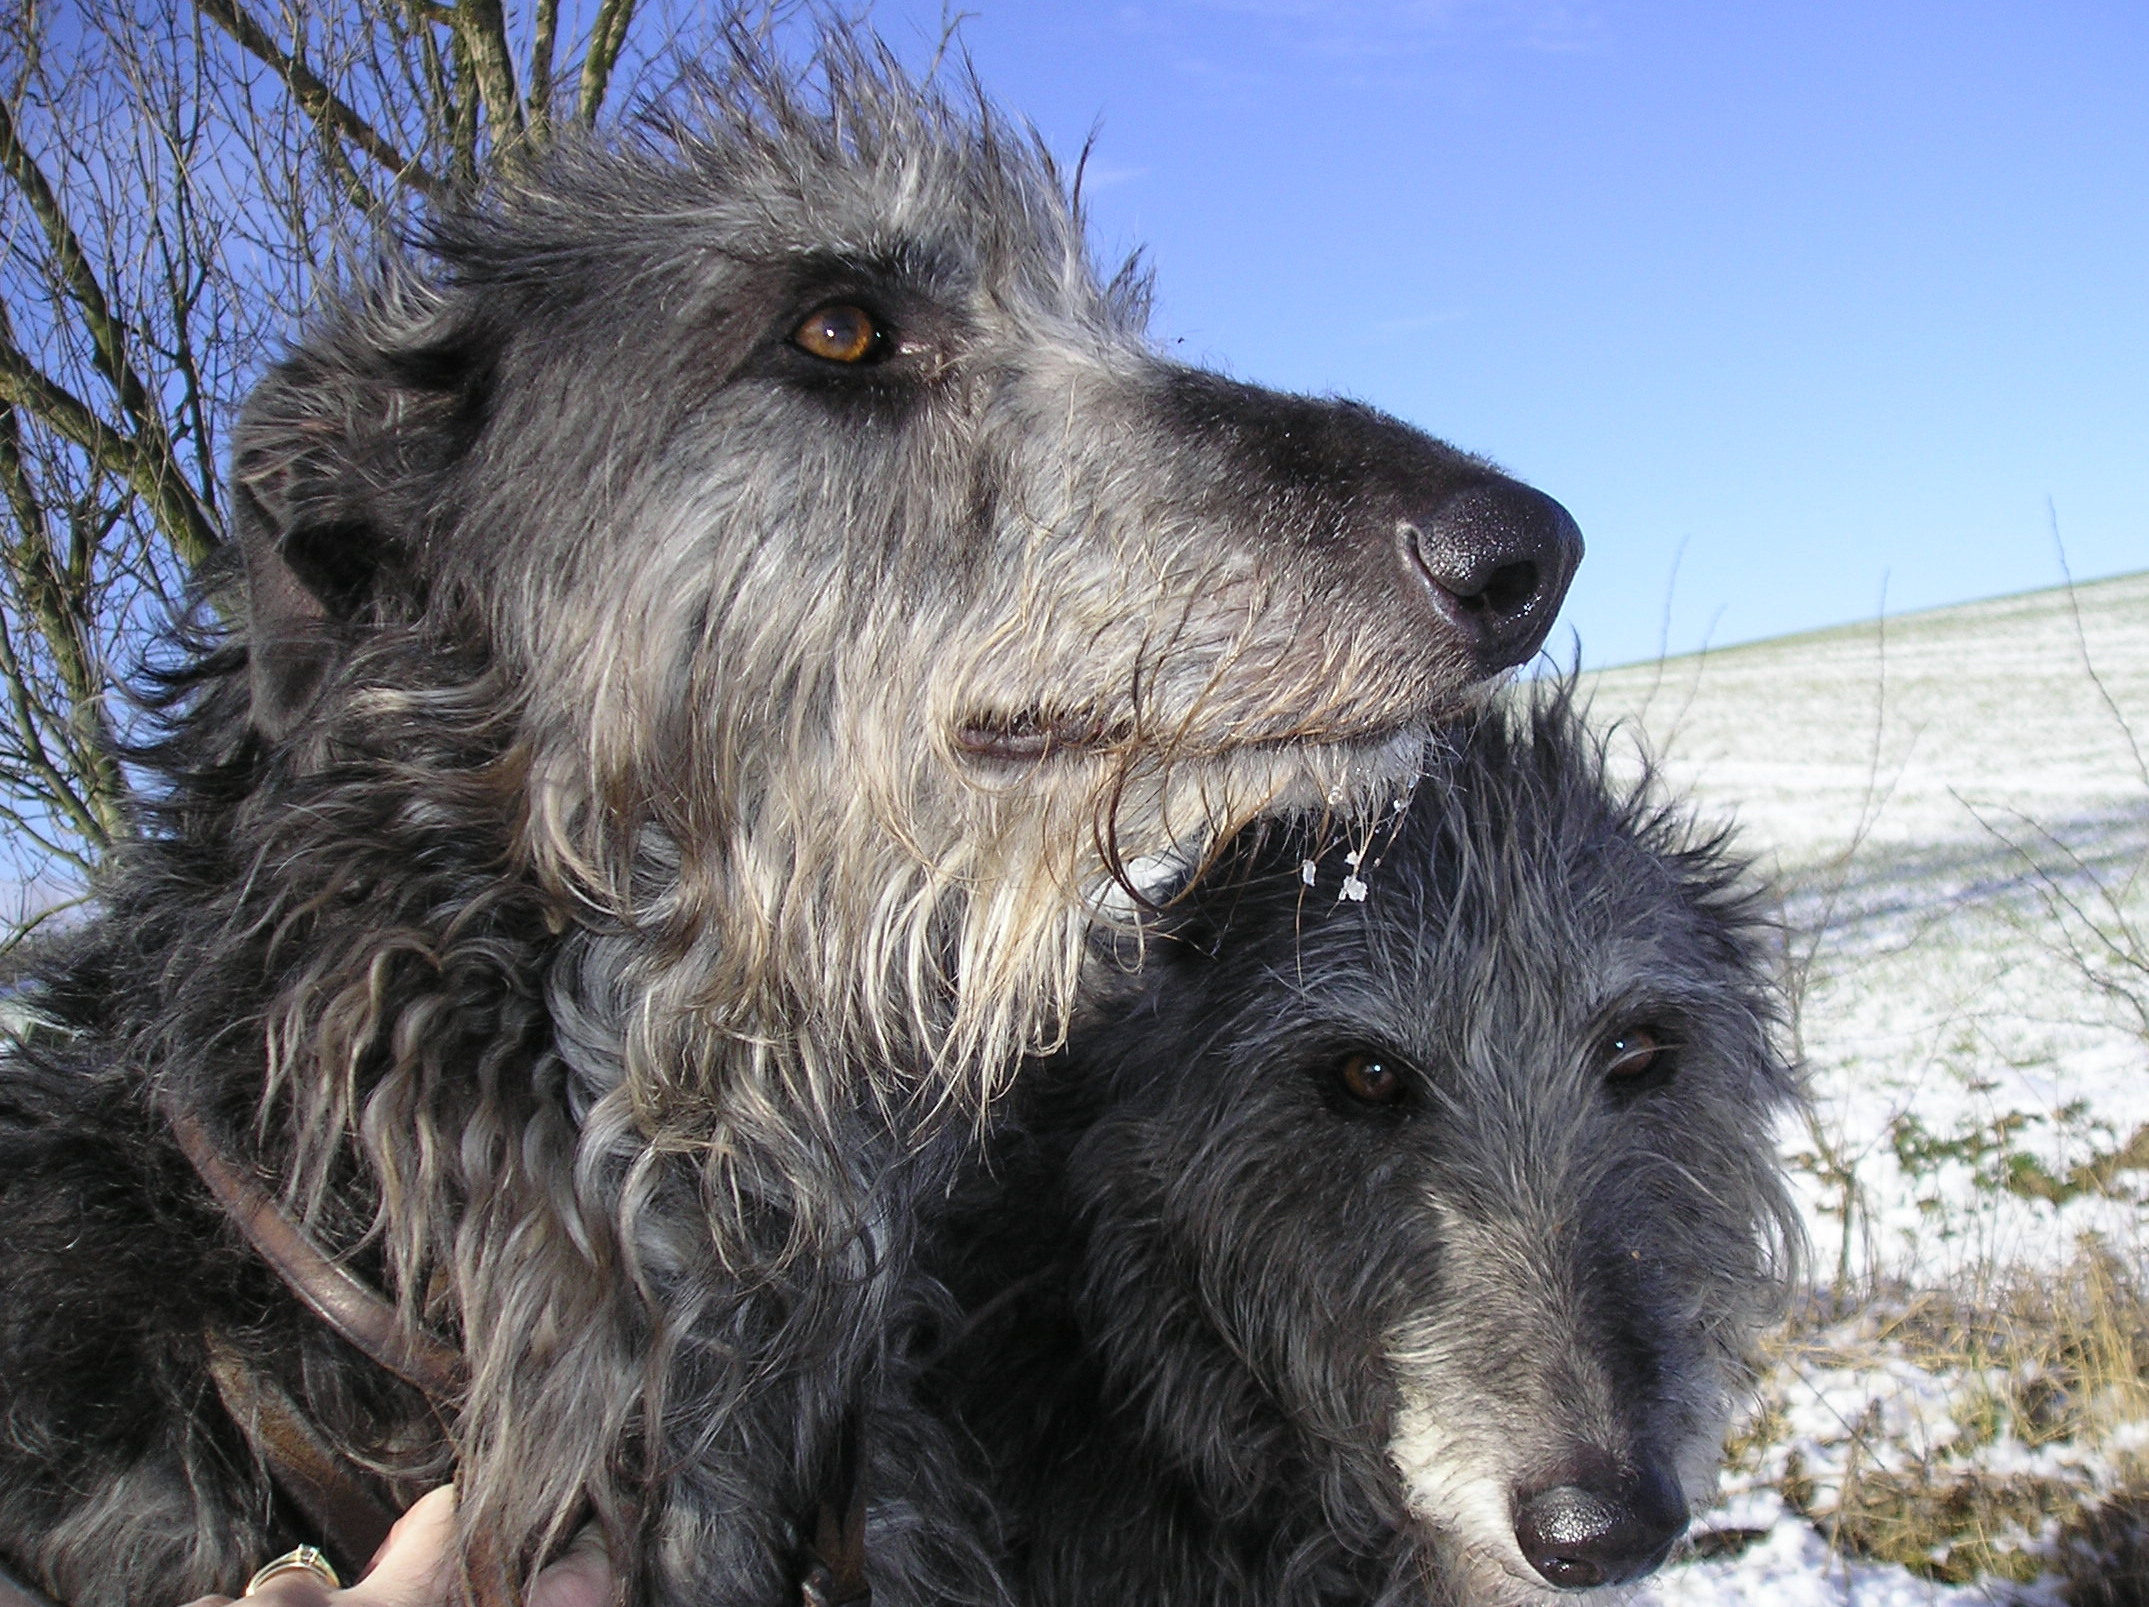 Ch. Kilbourne Grey Ghost of Ladygrove       &      Ch. Kilbourne Melissa of Ladygrove  my first two deerhounds.